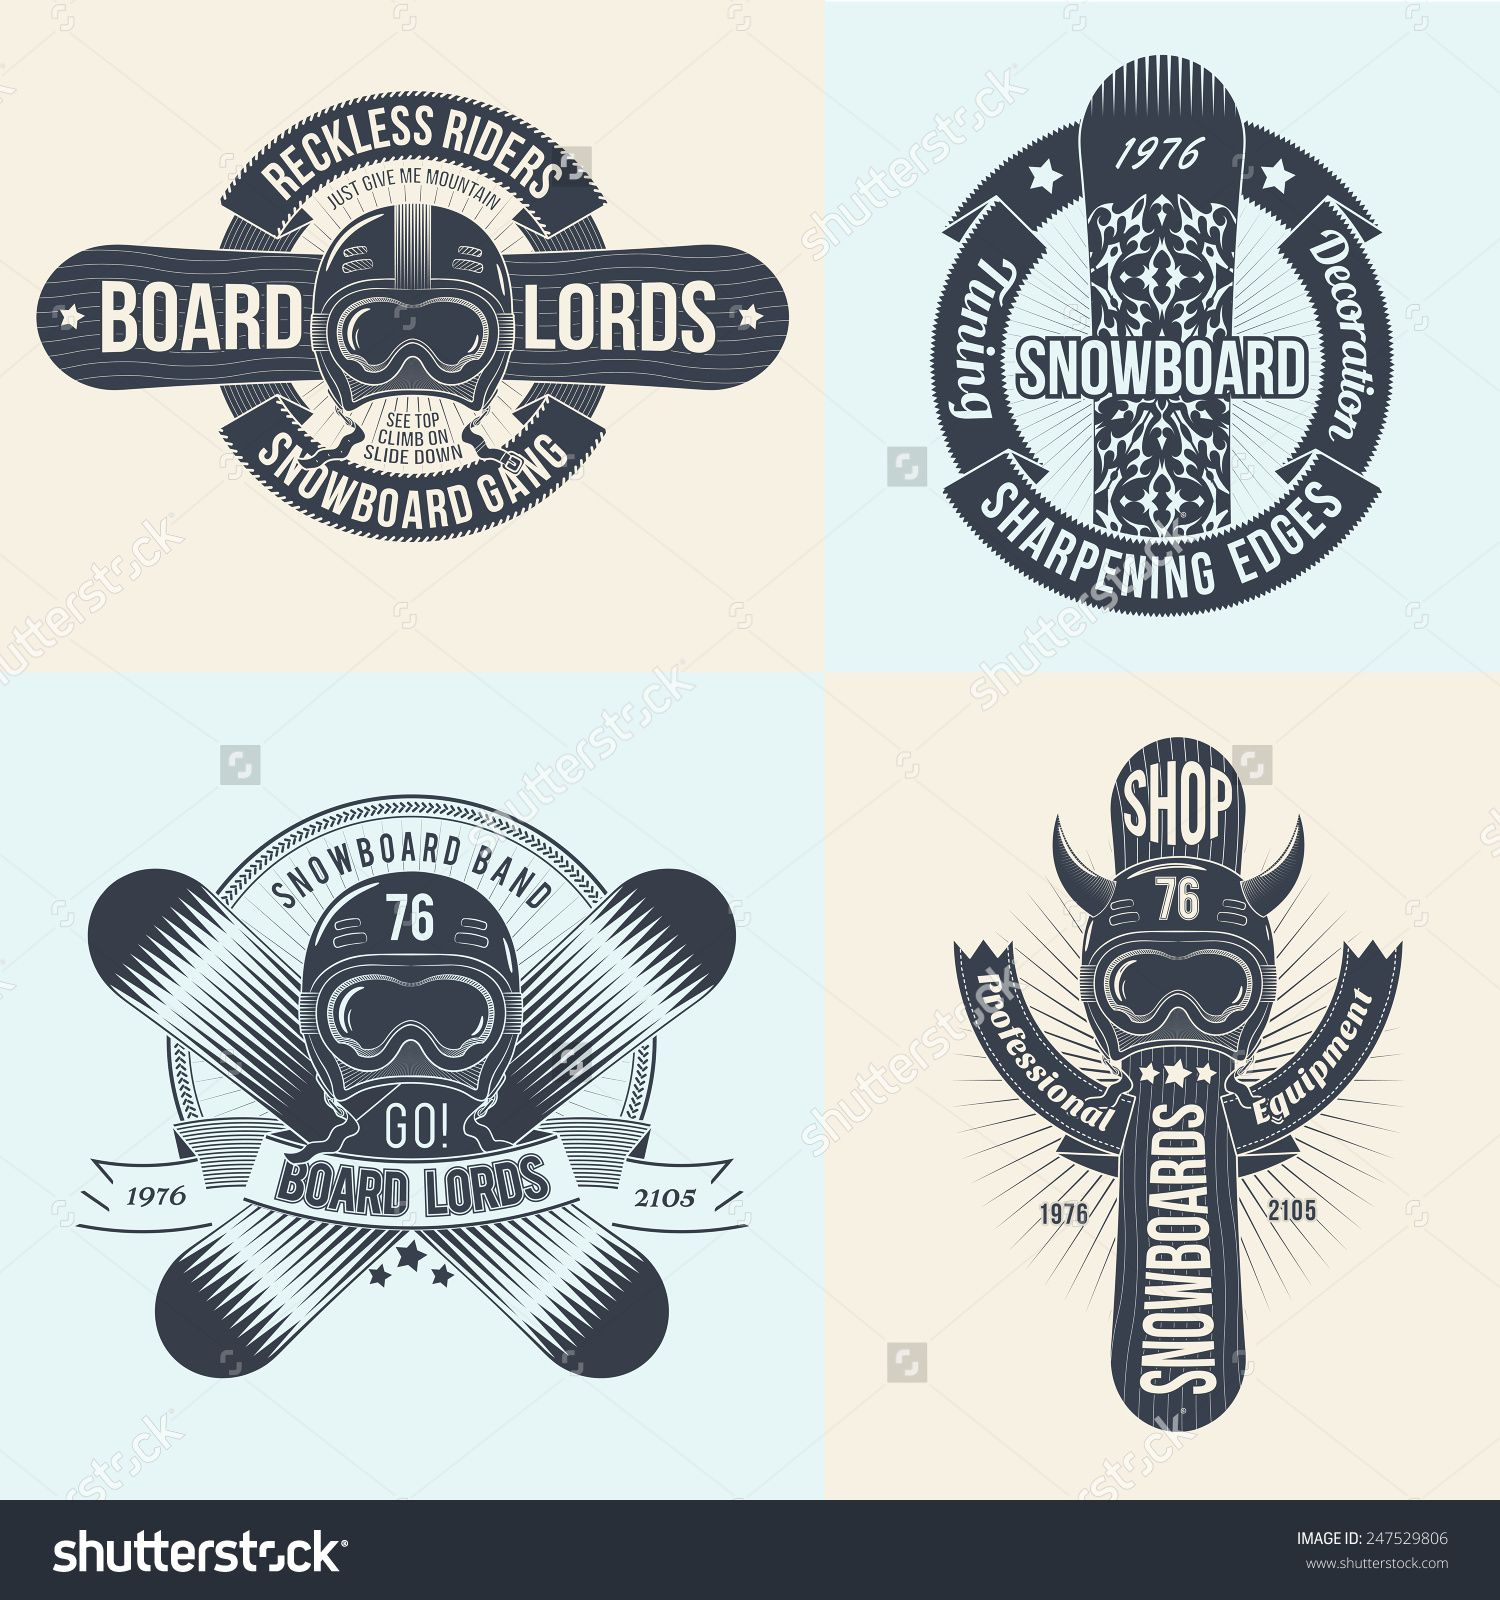 Snowboard Logos Emblems Of Different Designs Snowboards Helmets